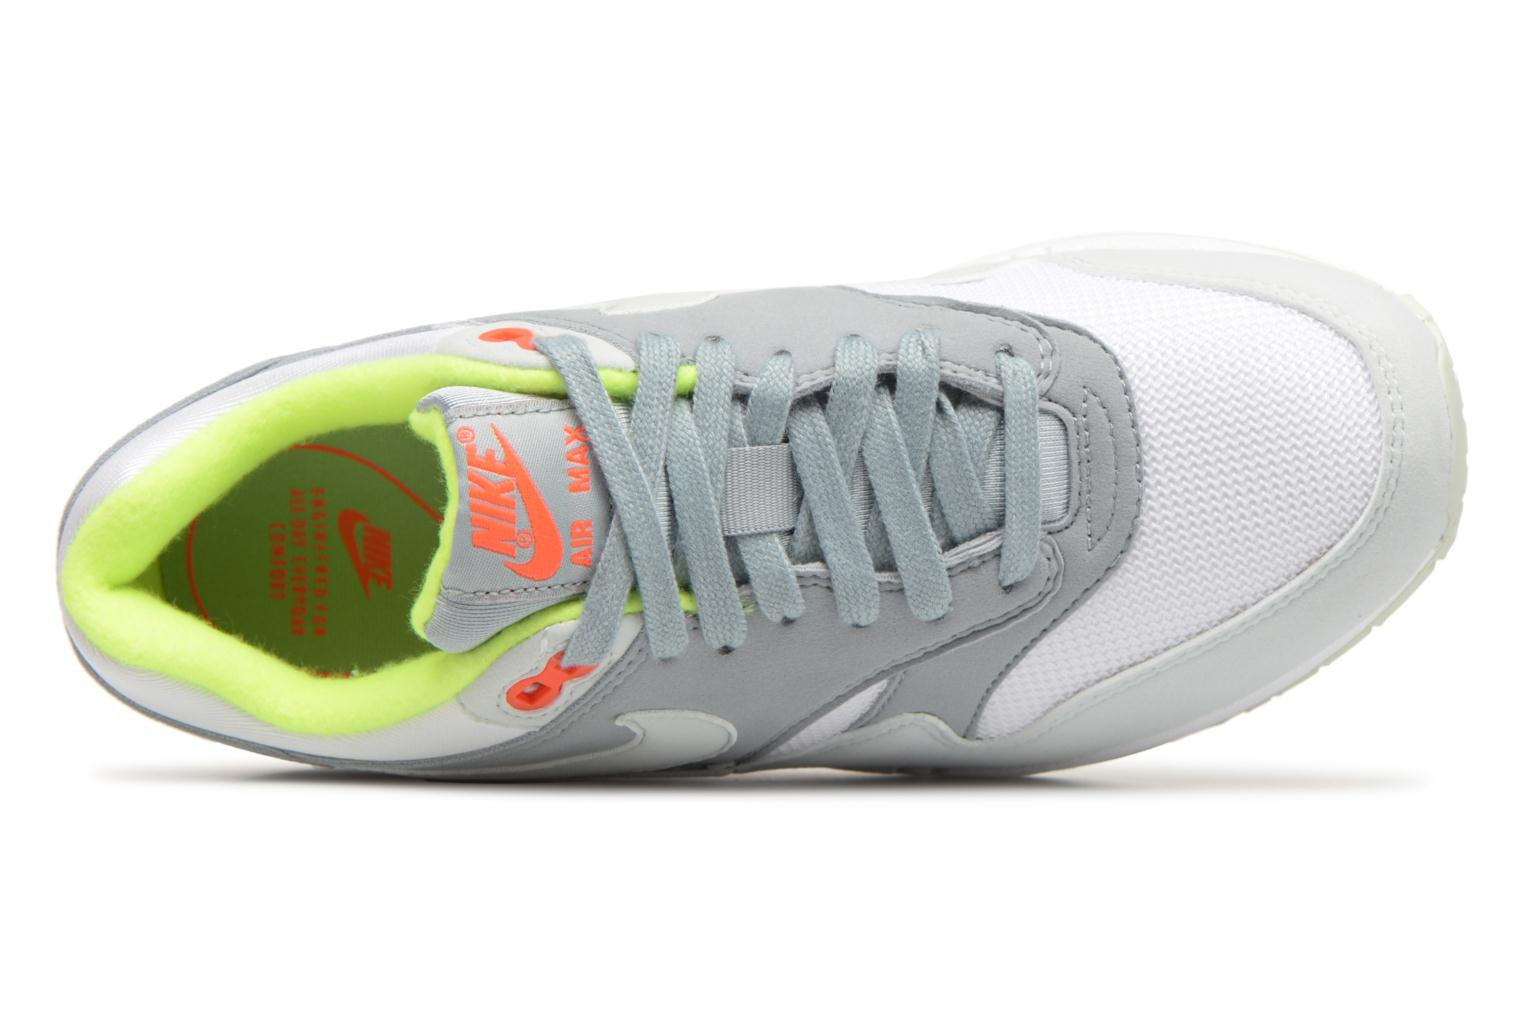 Wmns Air Grey Volt Barely 1 White Nike Pumice Light Max aRxdqxT